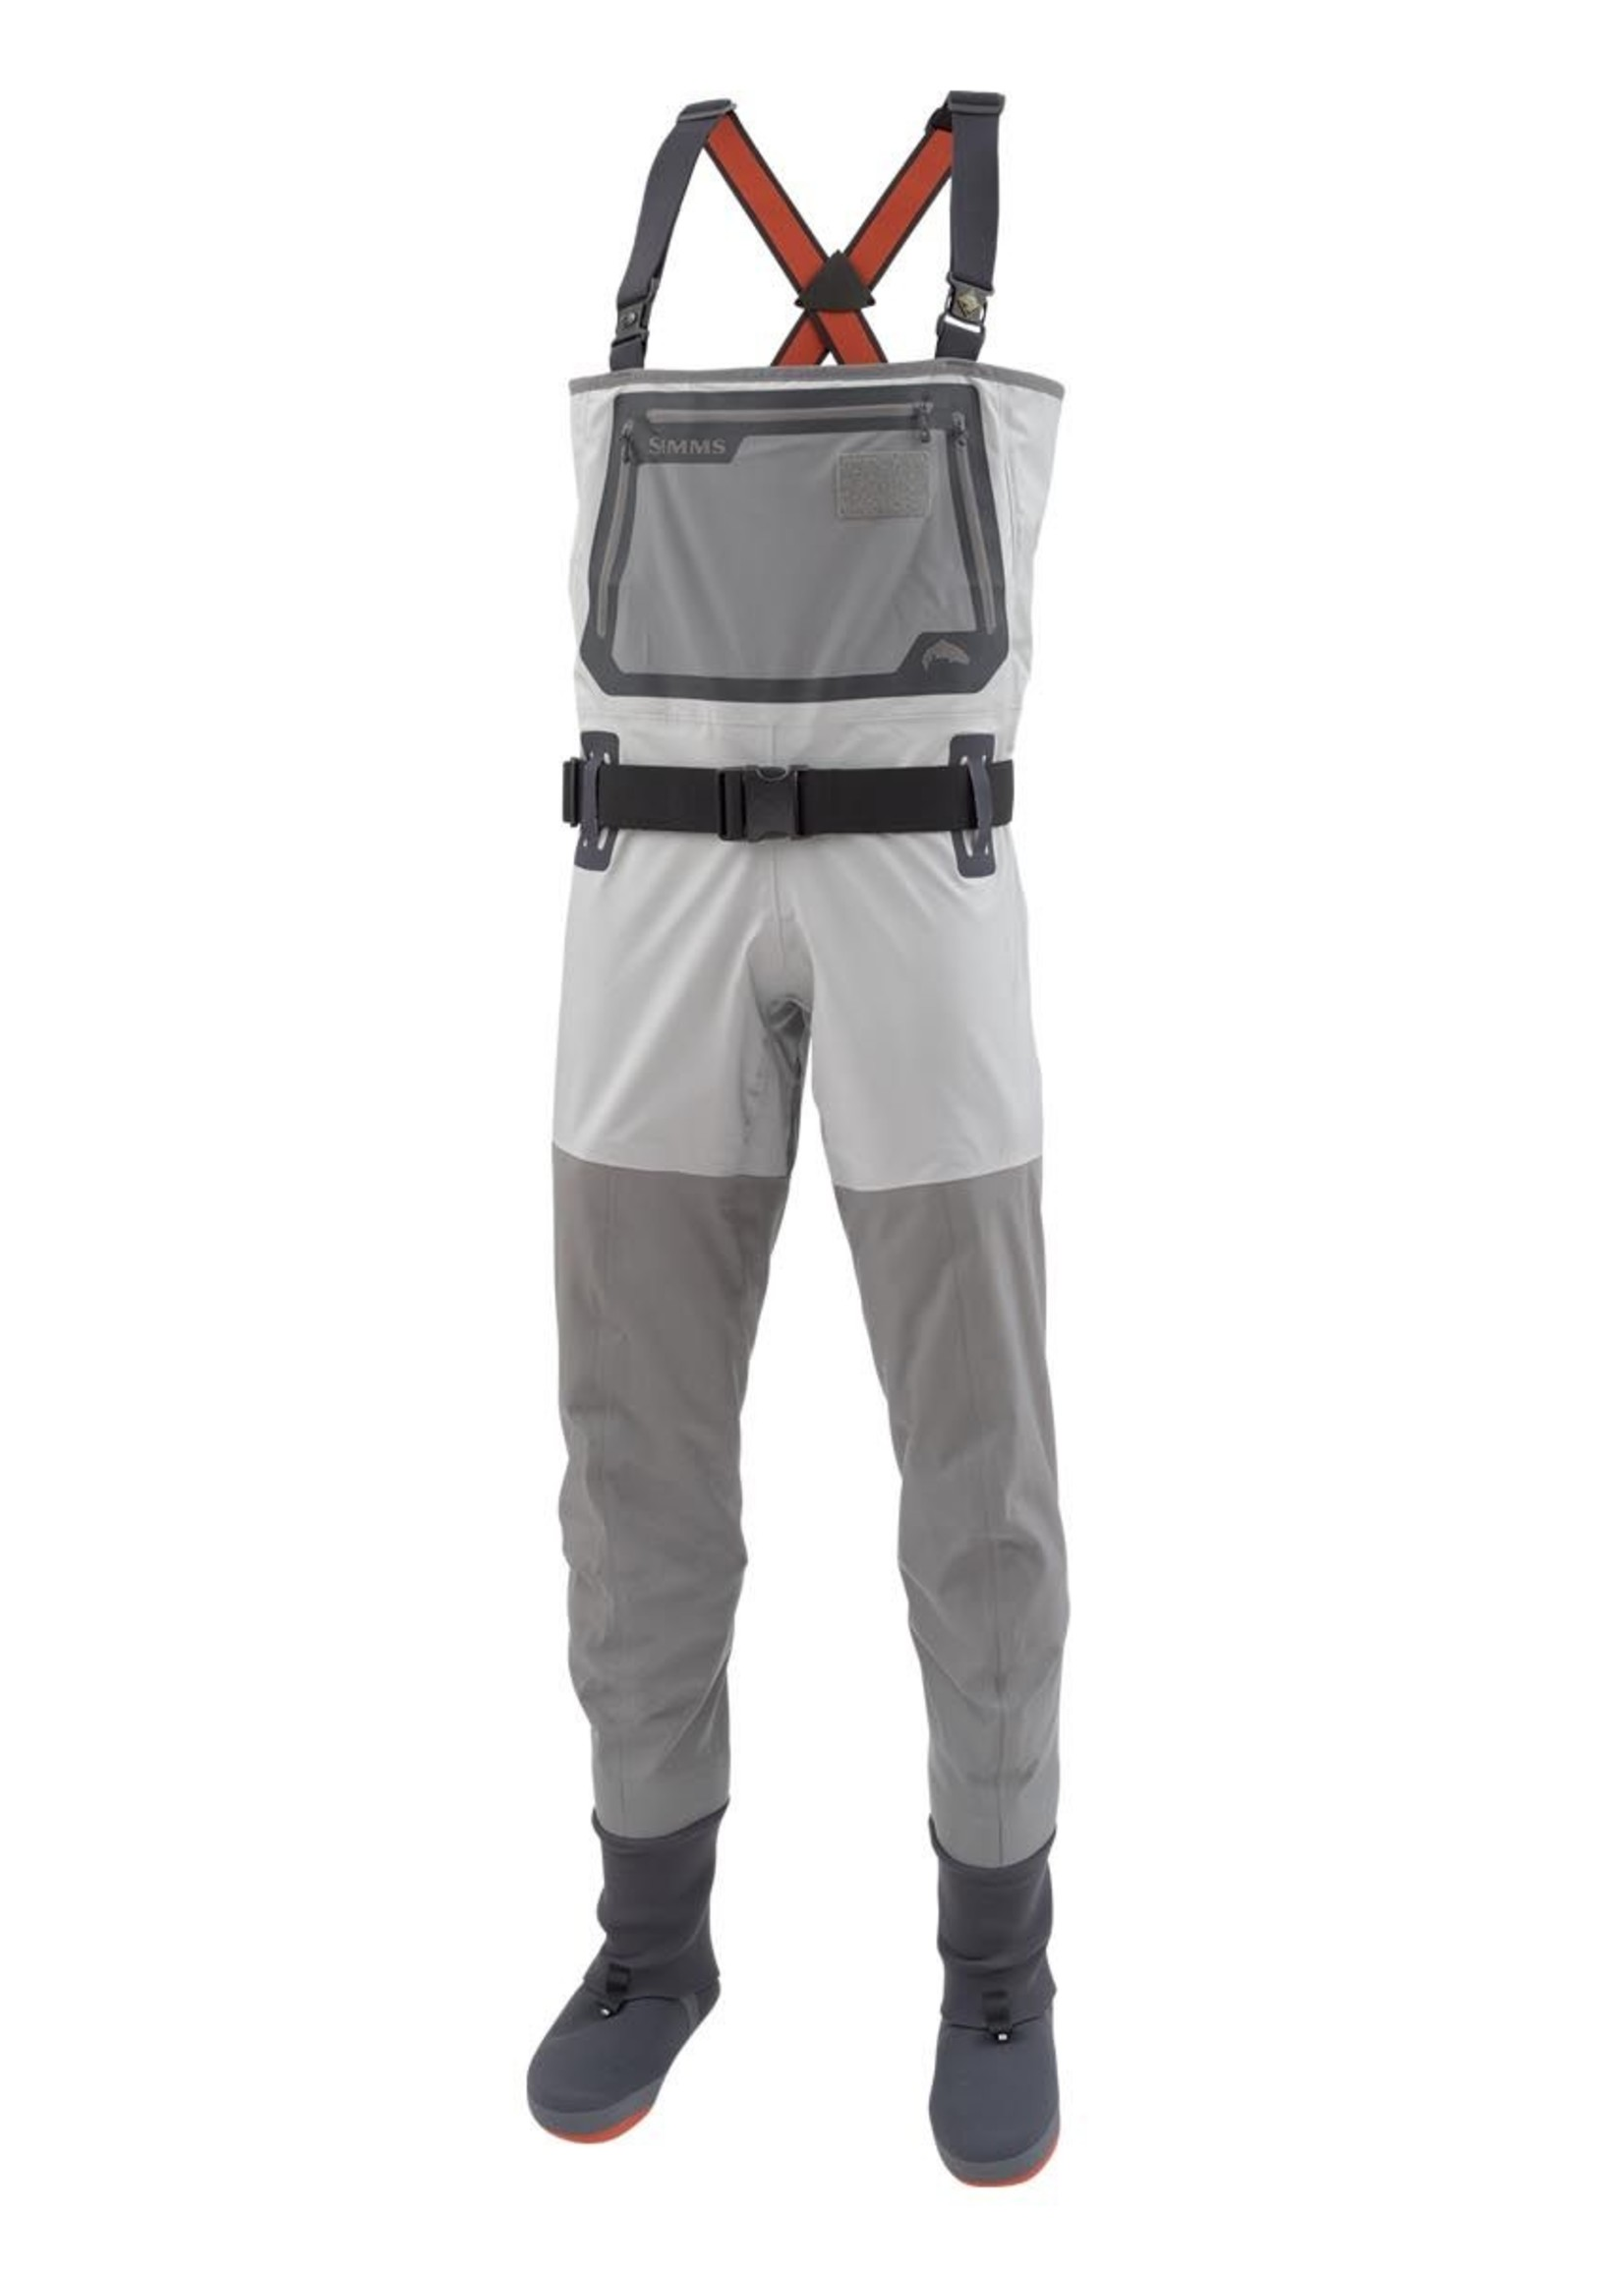 SIMMS M'S G3 GUIDE WADERS